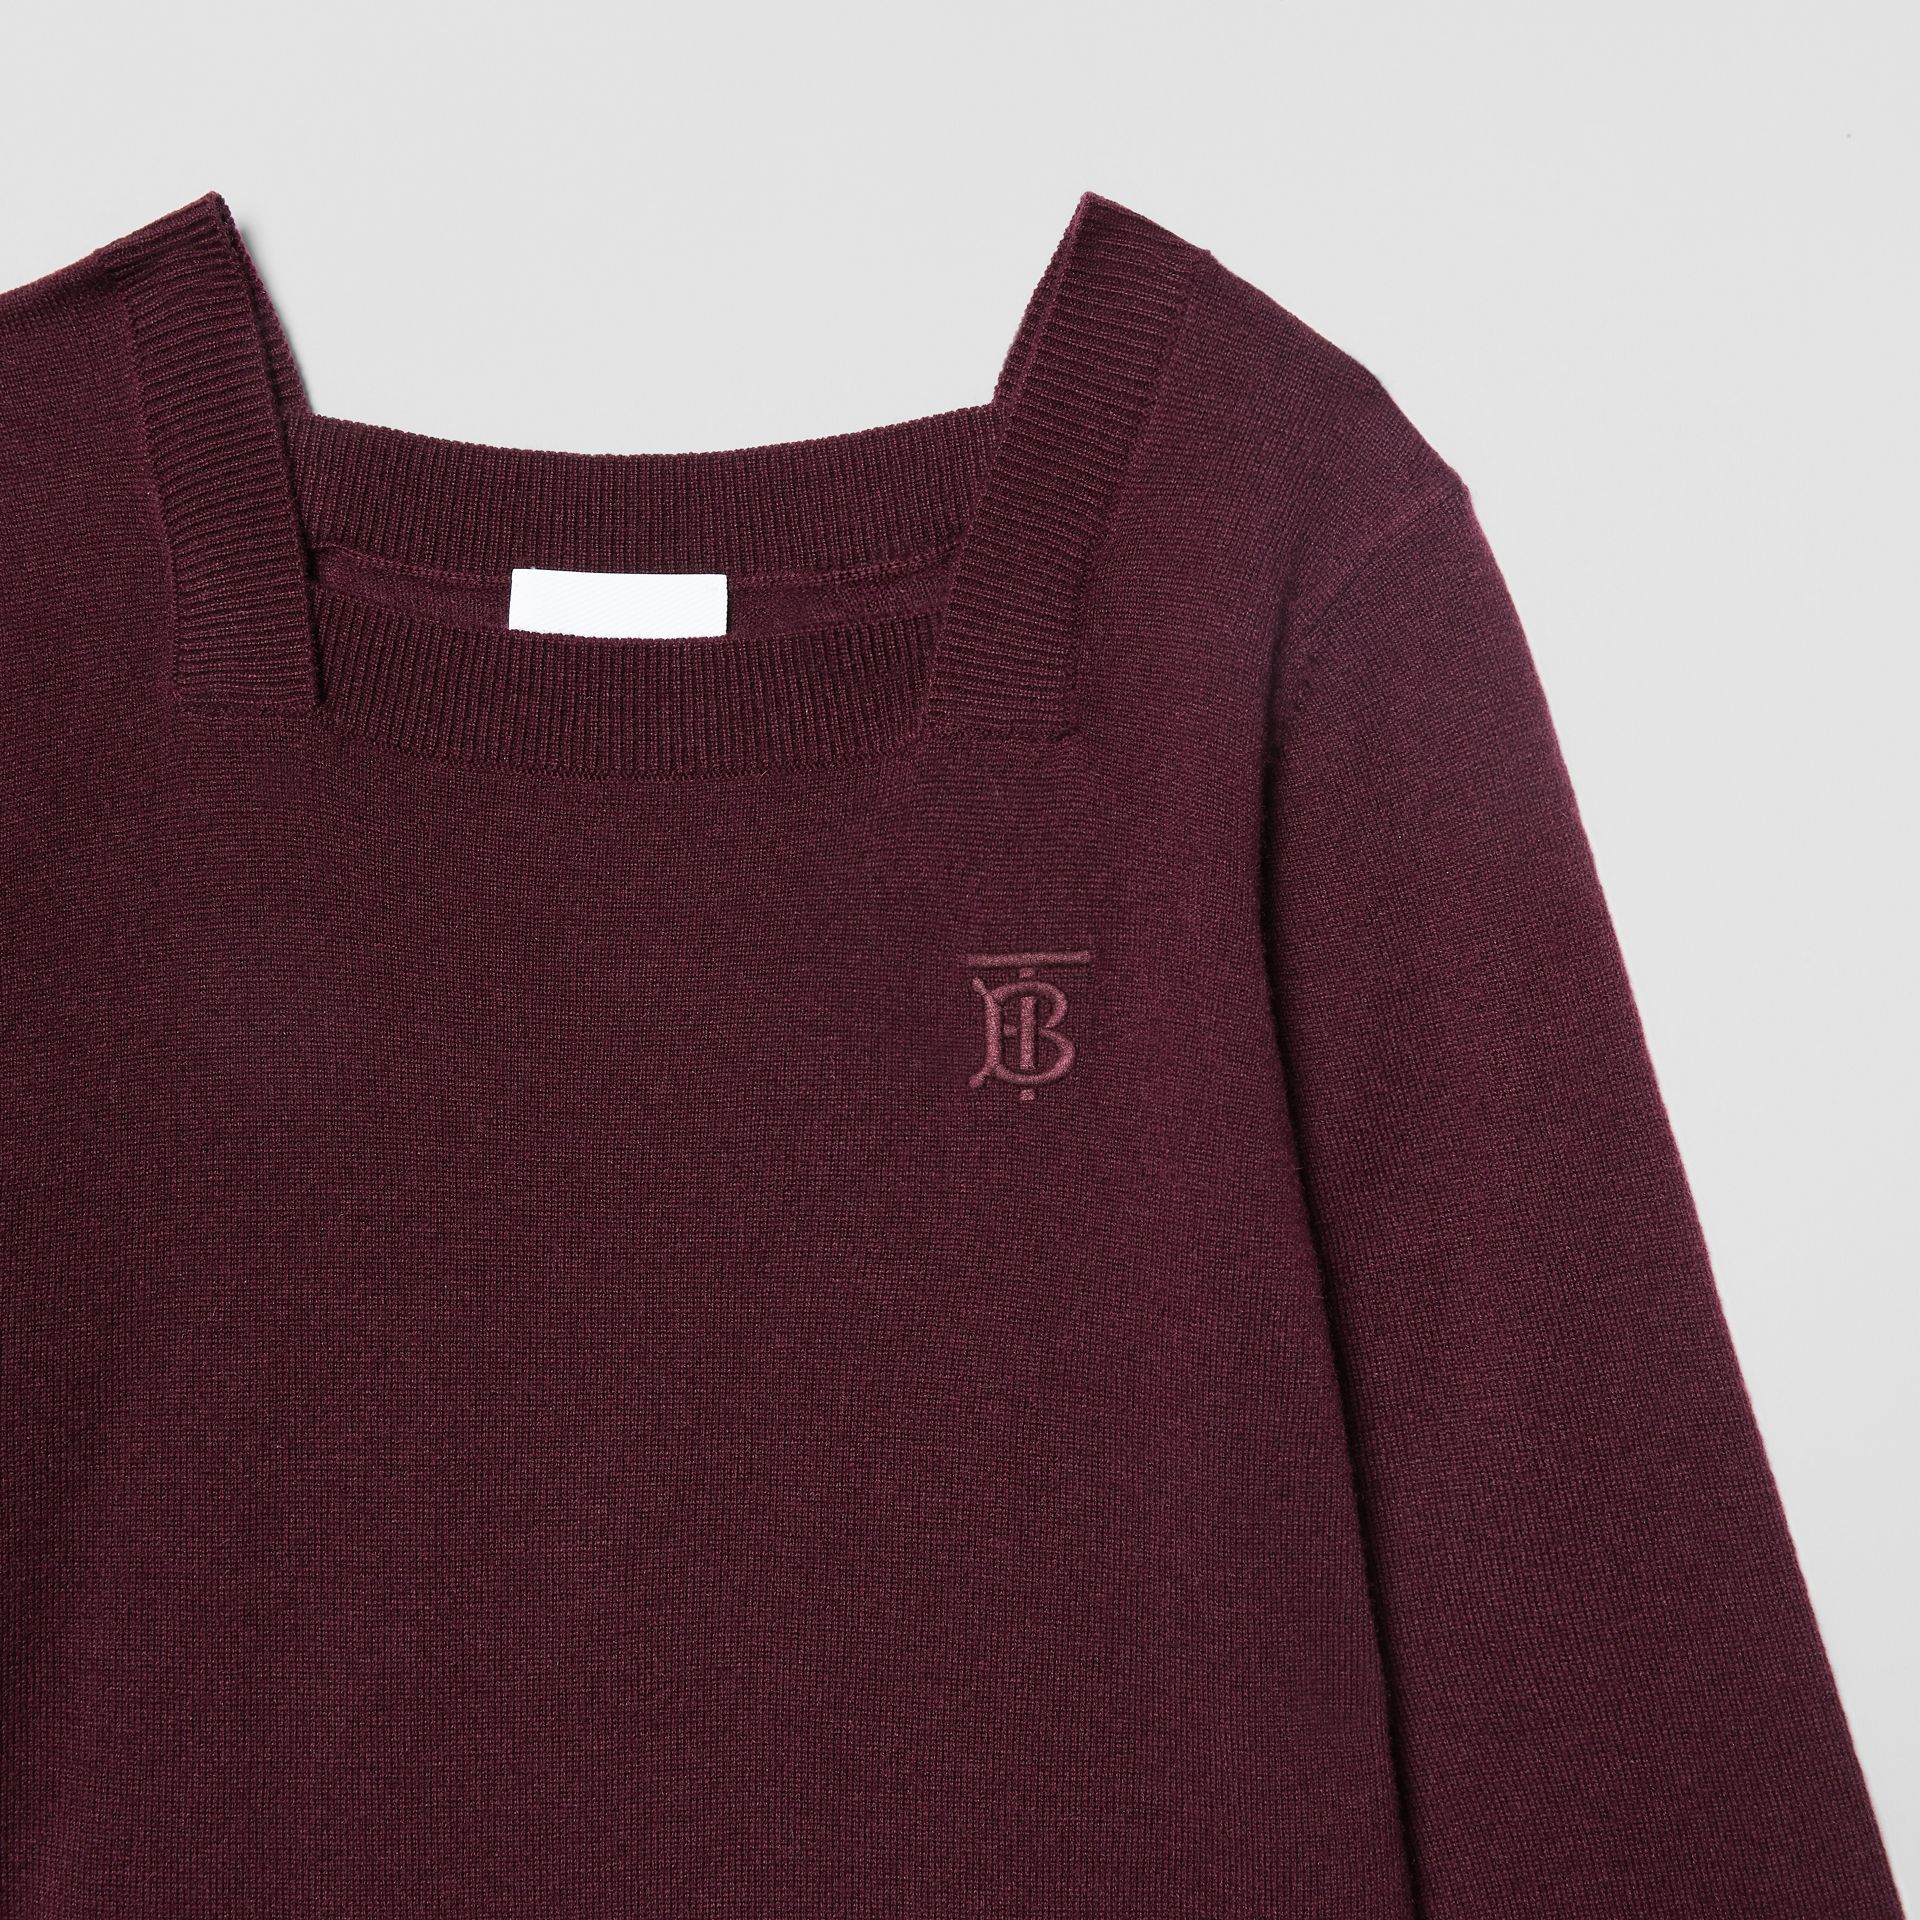 Monogram Motif Cashmere Sweater Dress in Burgundy | Burberry United Kingdom - gallery image 4